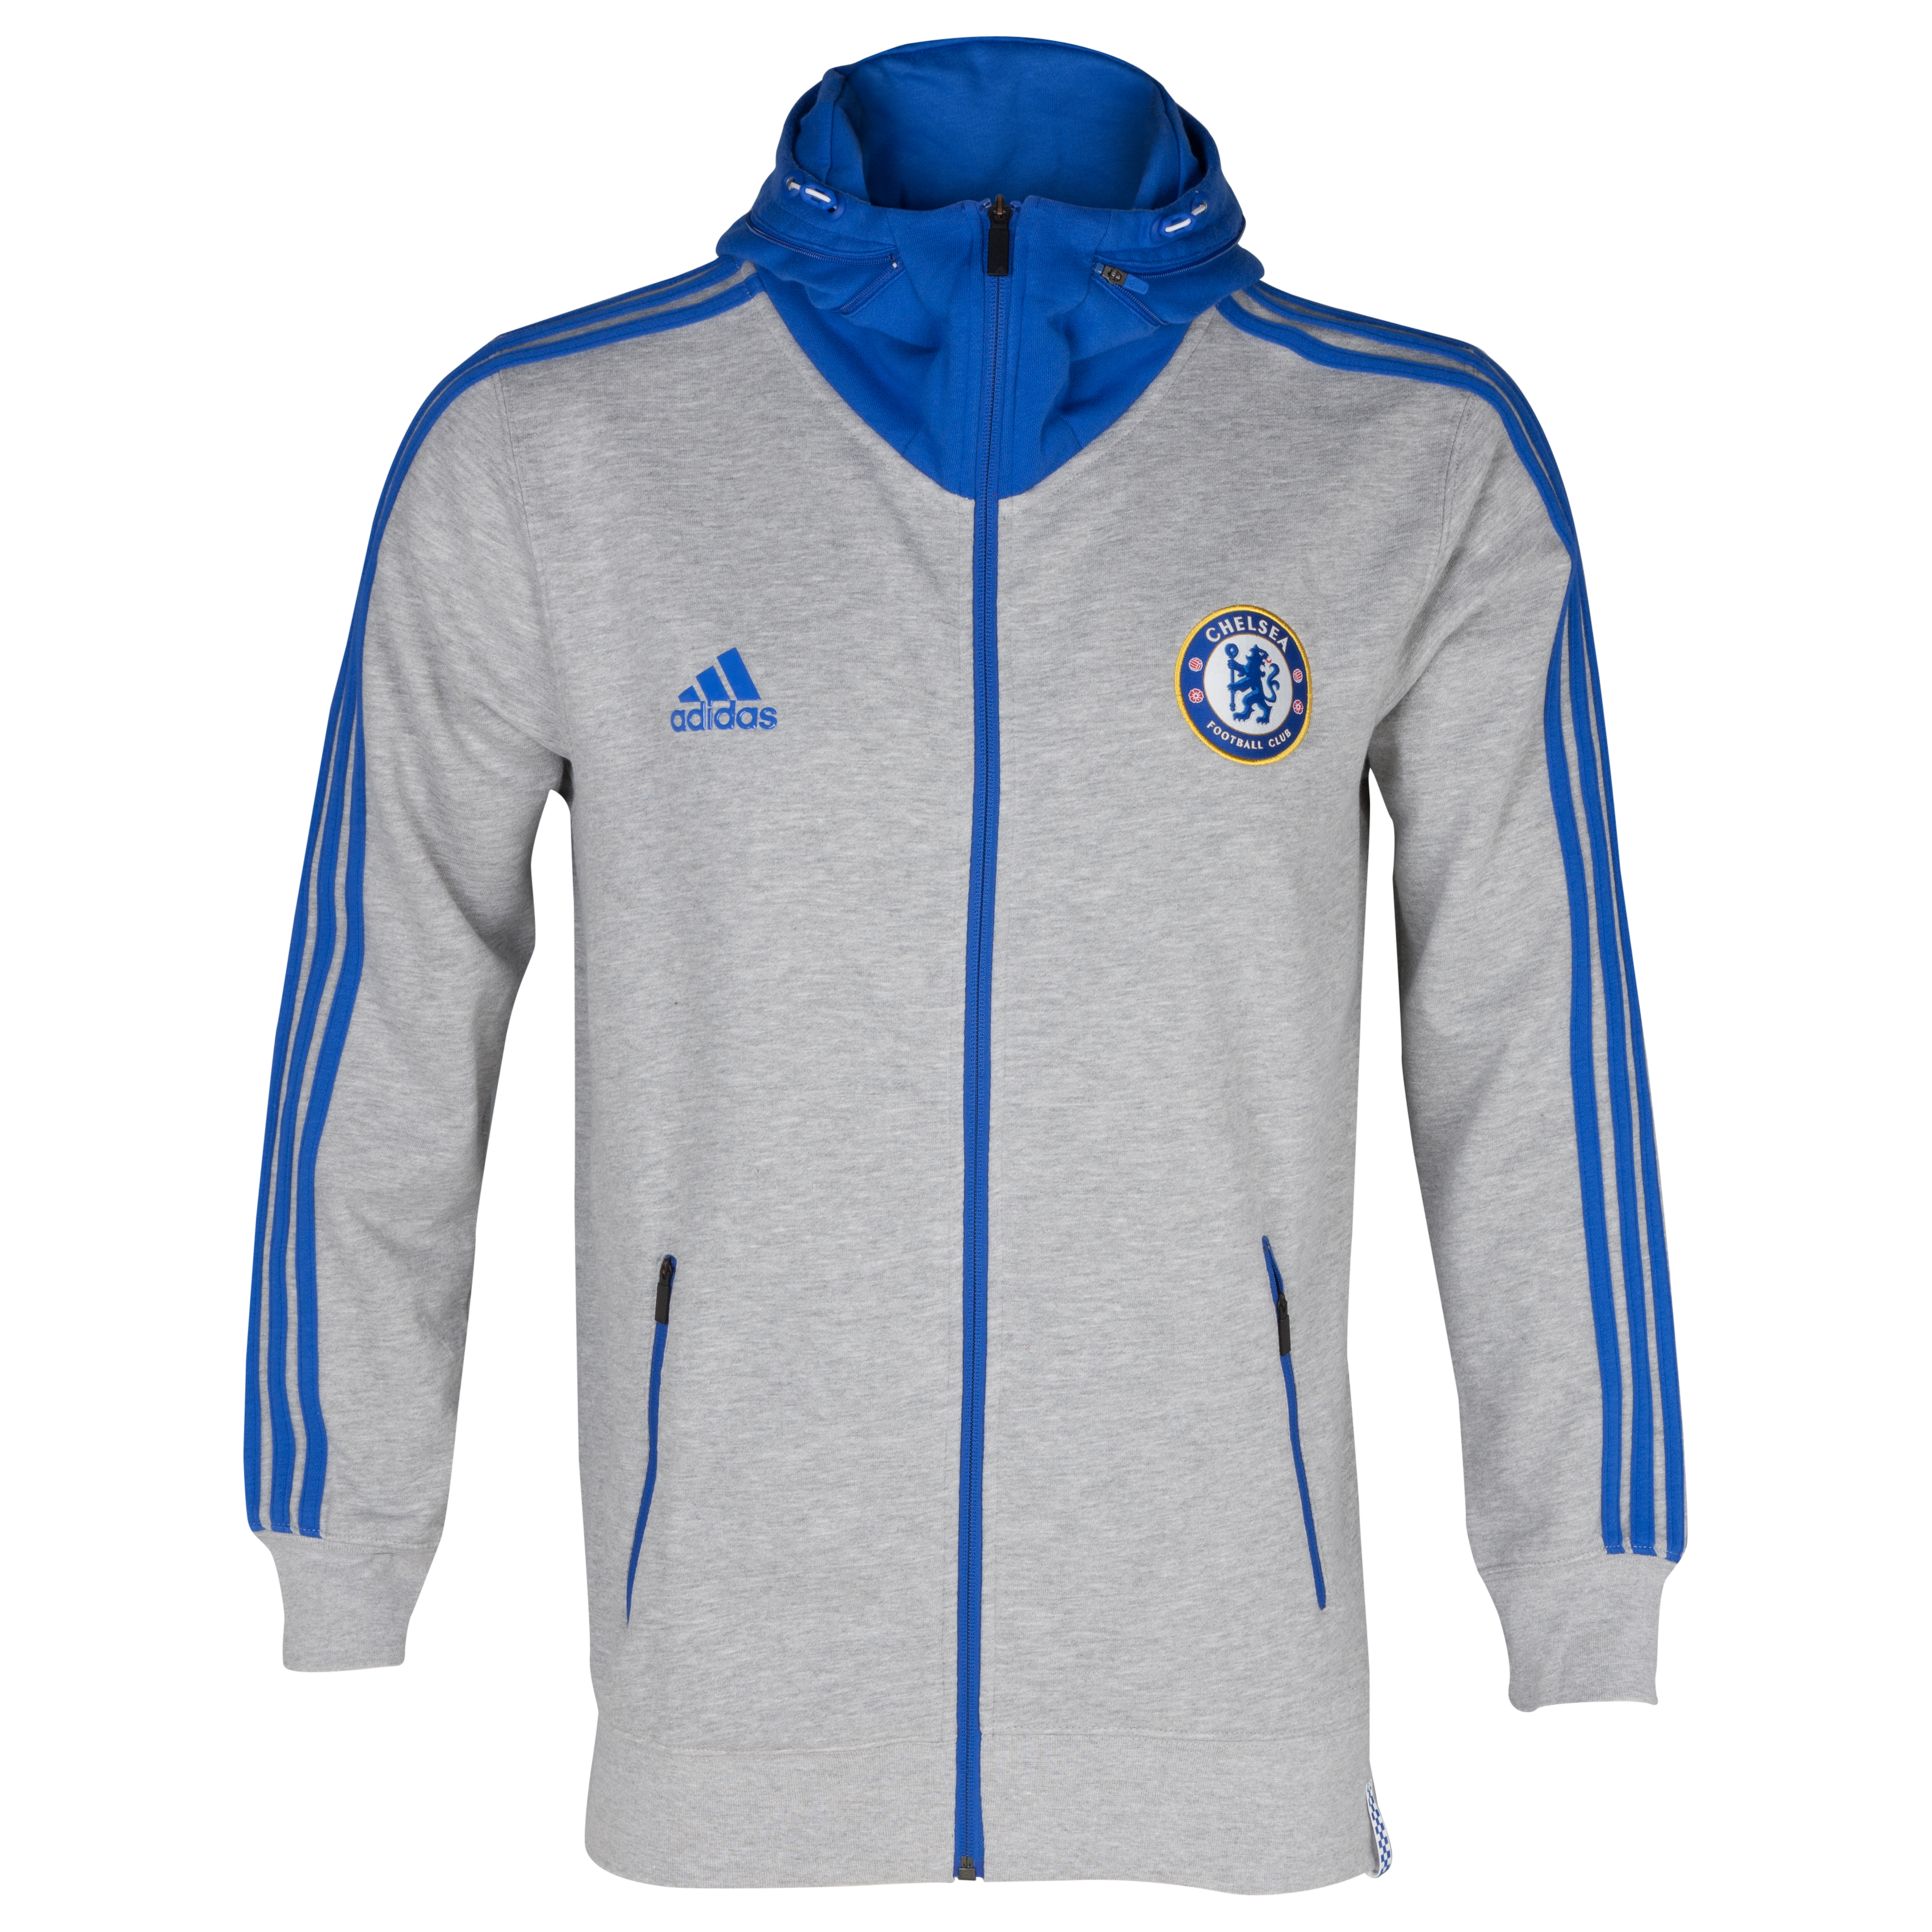 Chelsea Core Full Zip Hooded Top - Medium Grey Heather/Cfc Reflex Blue